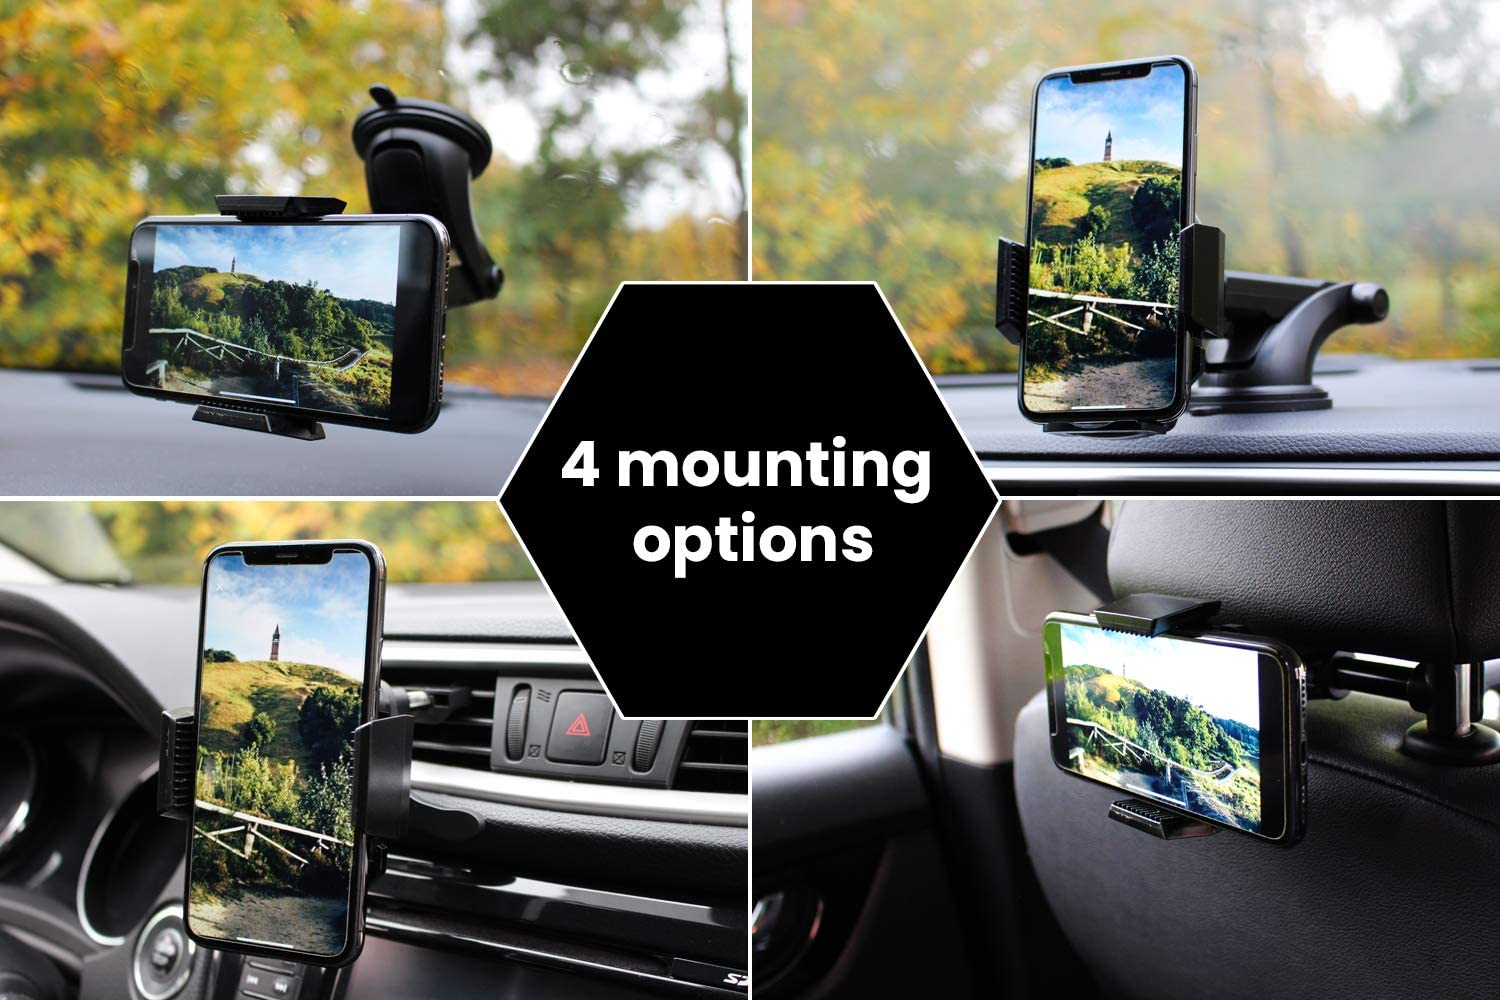 HACKSONE Car Phone Mount 4 in1 Universal Cell Phone Holder for Car Dashboard//Windshield//Air Vent and Headrest Phone Mount Compatible with iPhone11//11Pro//X Max//XR//XS//X//8Plus//8//7//Samsung Galaxy//Note